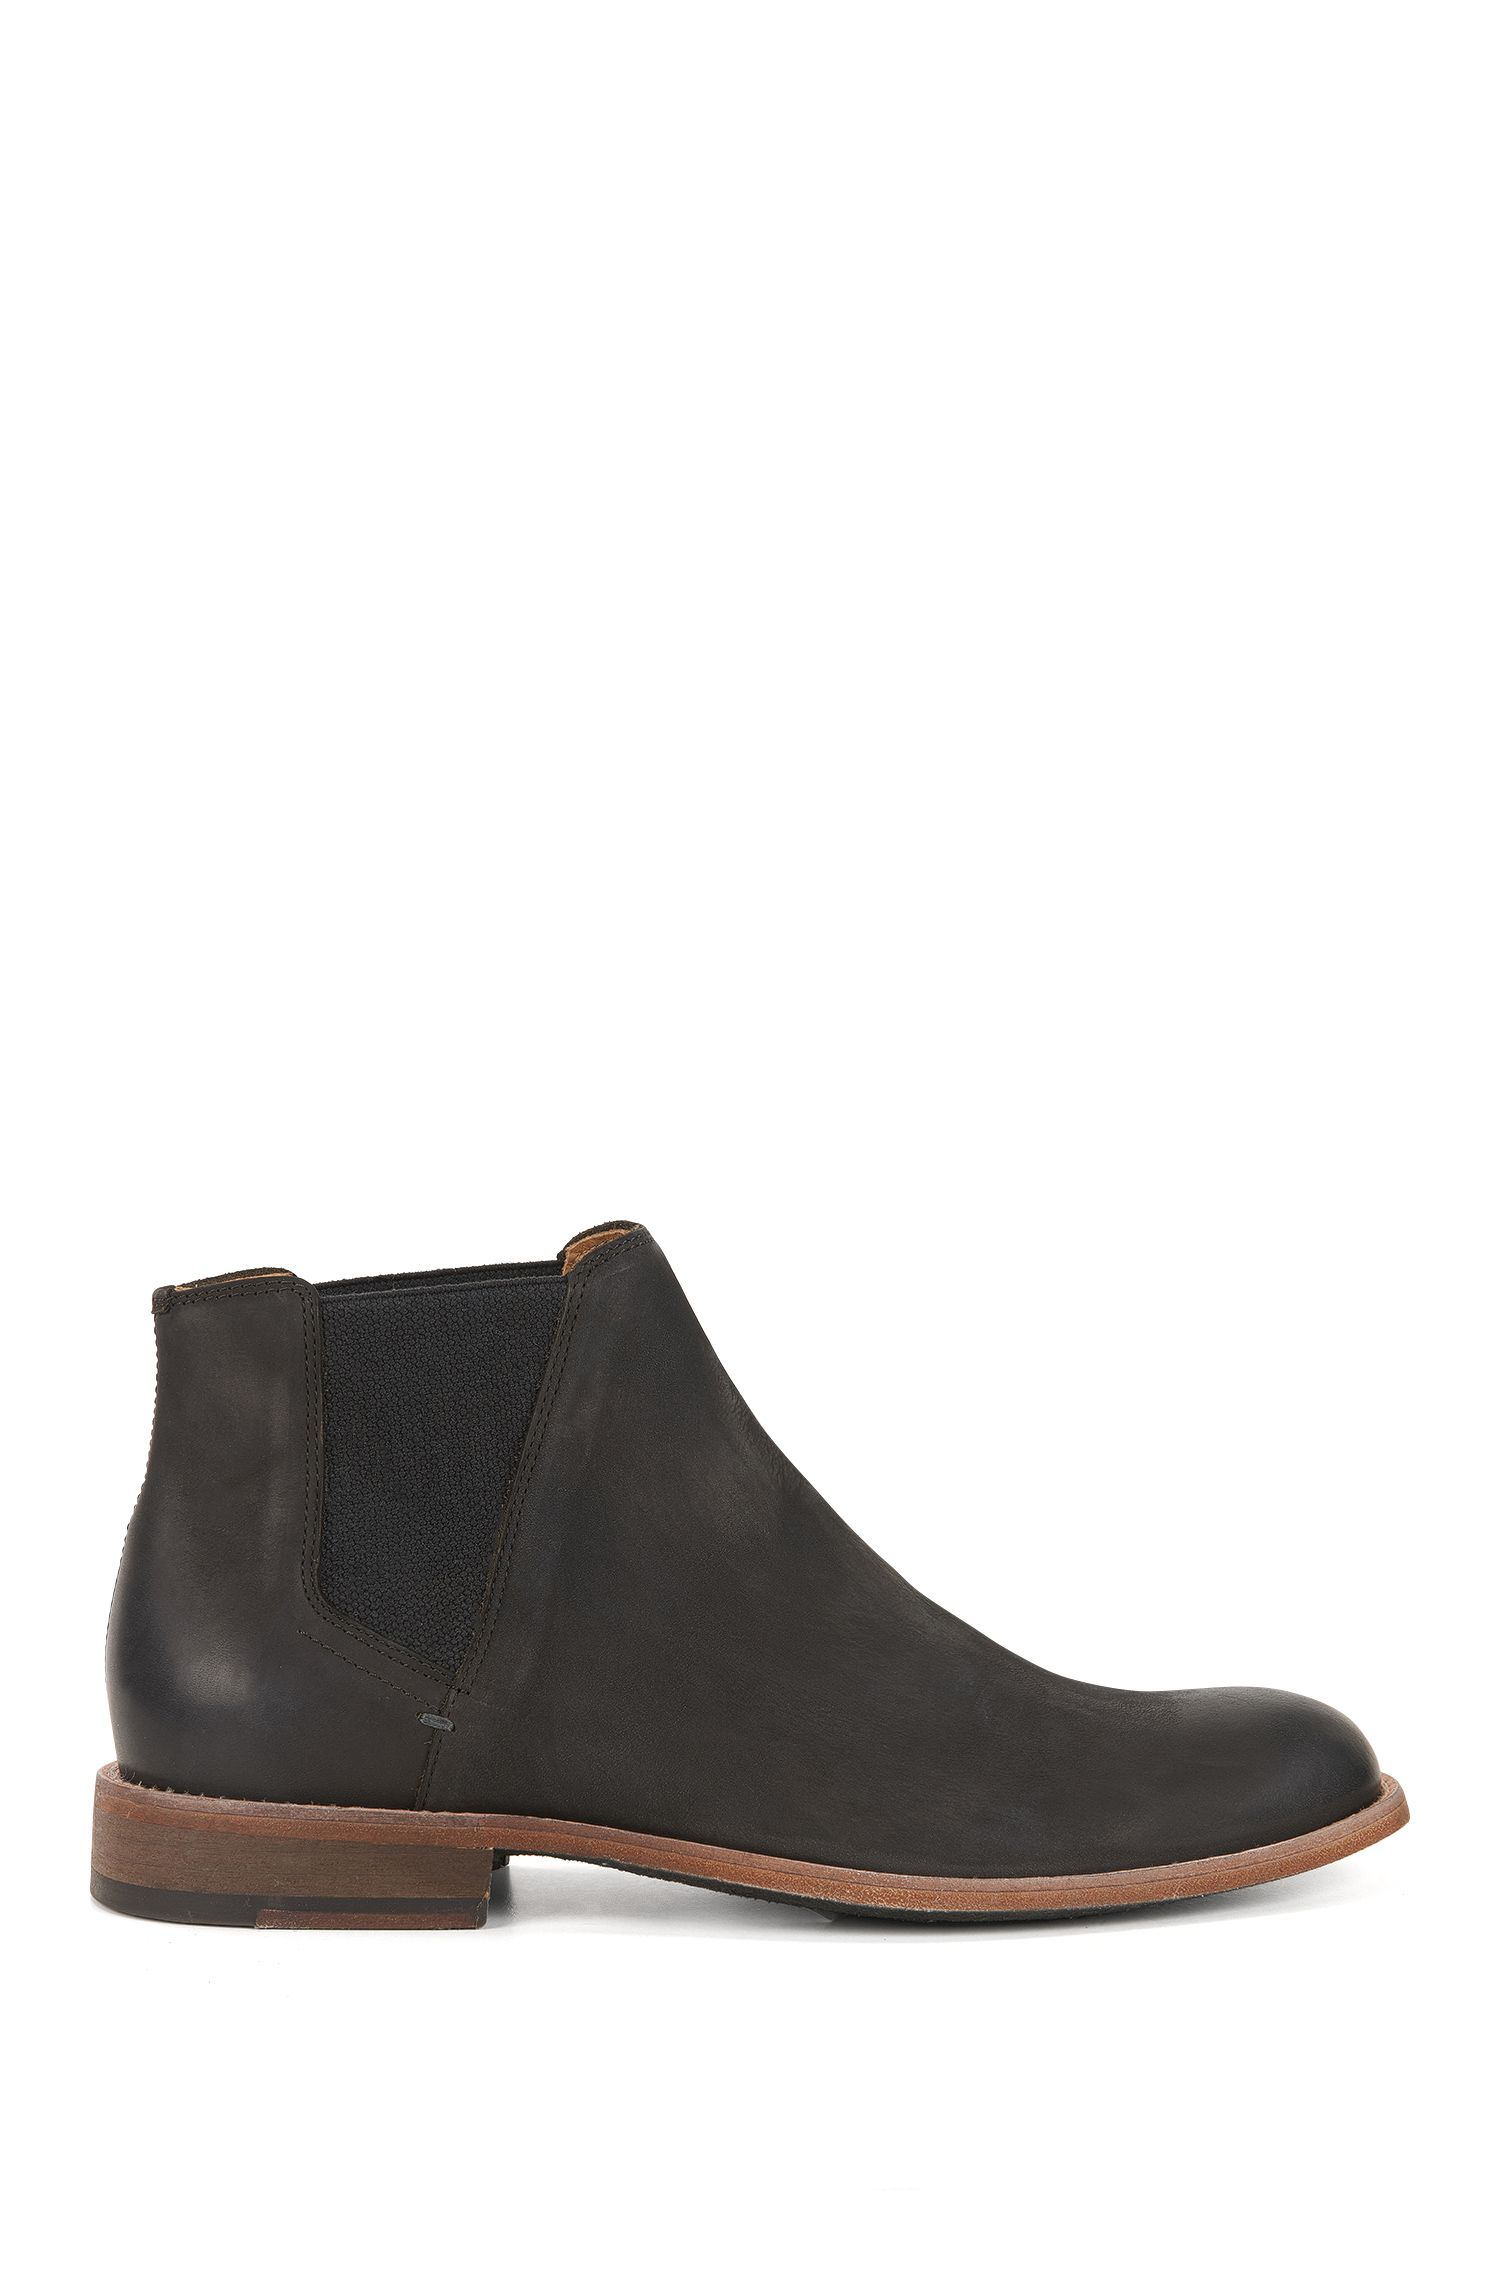 Chelsea boots in smooth nubuck